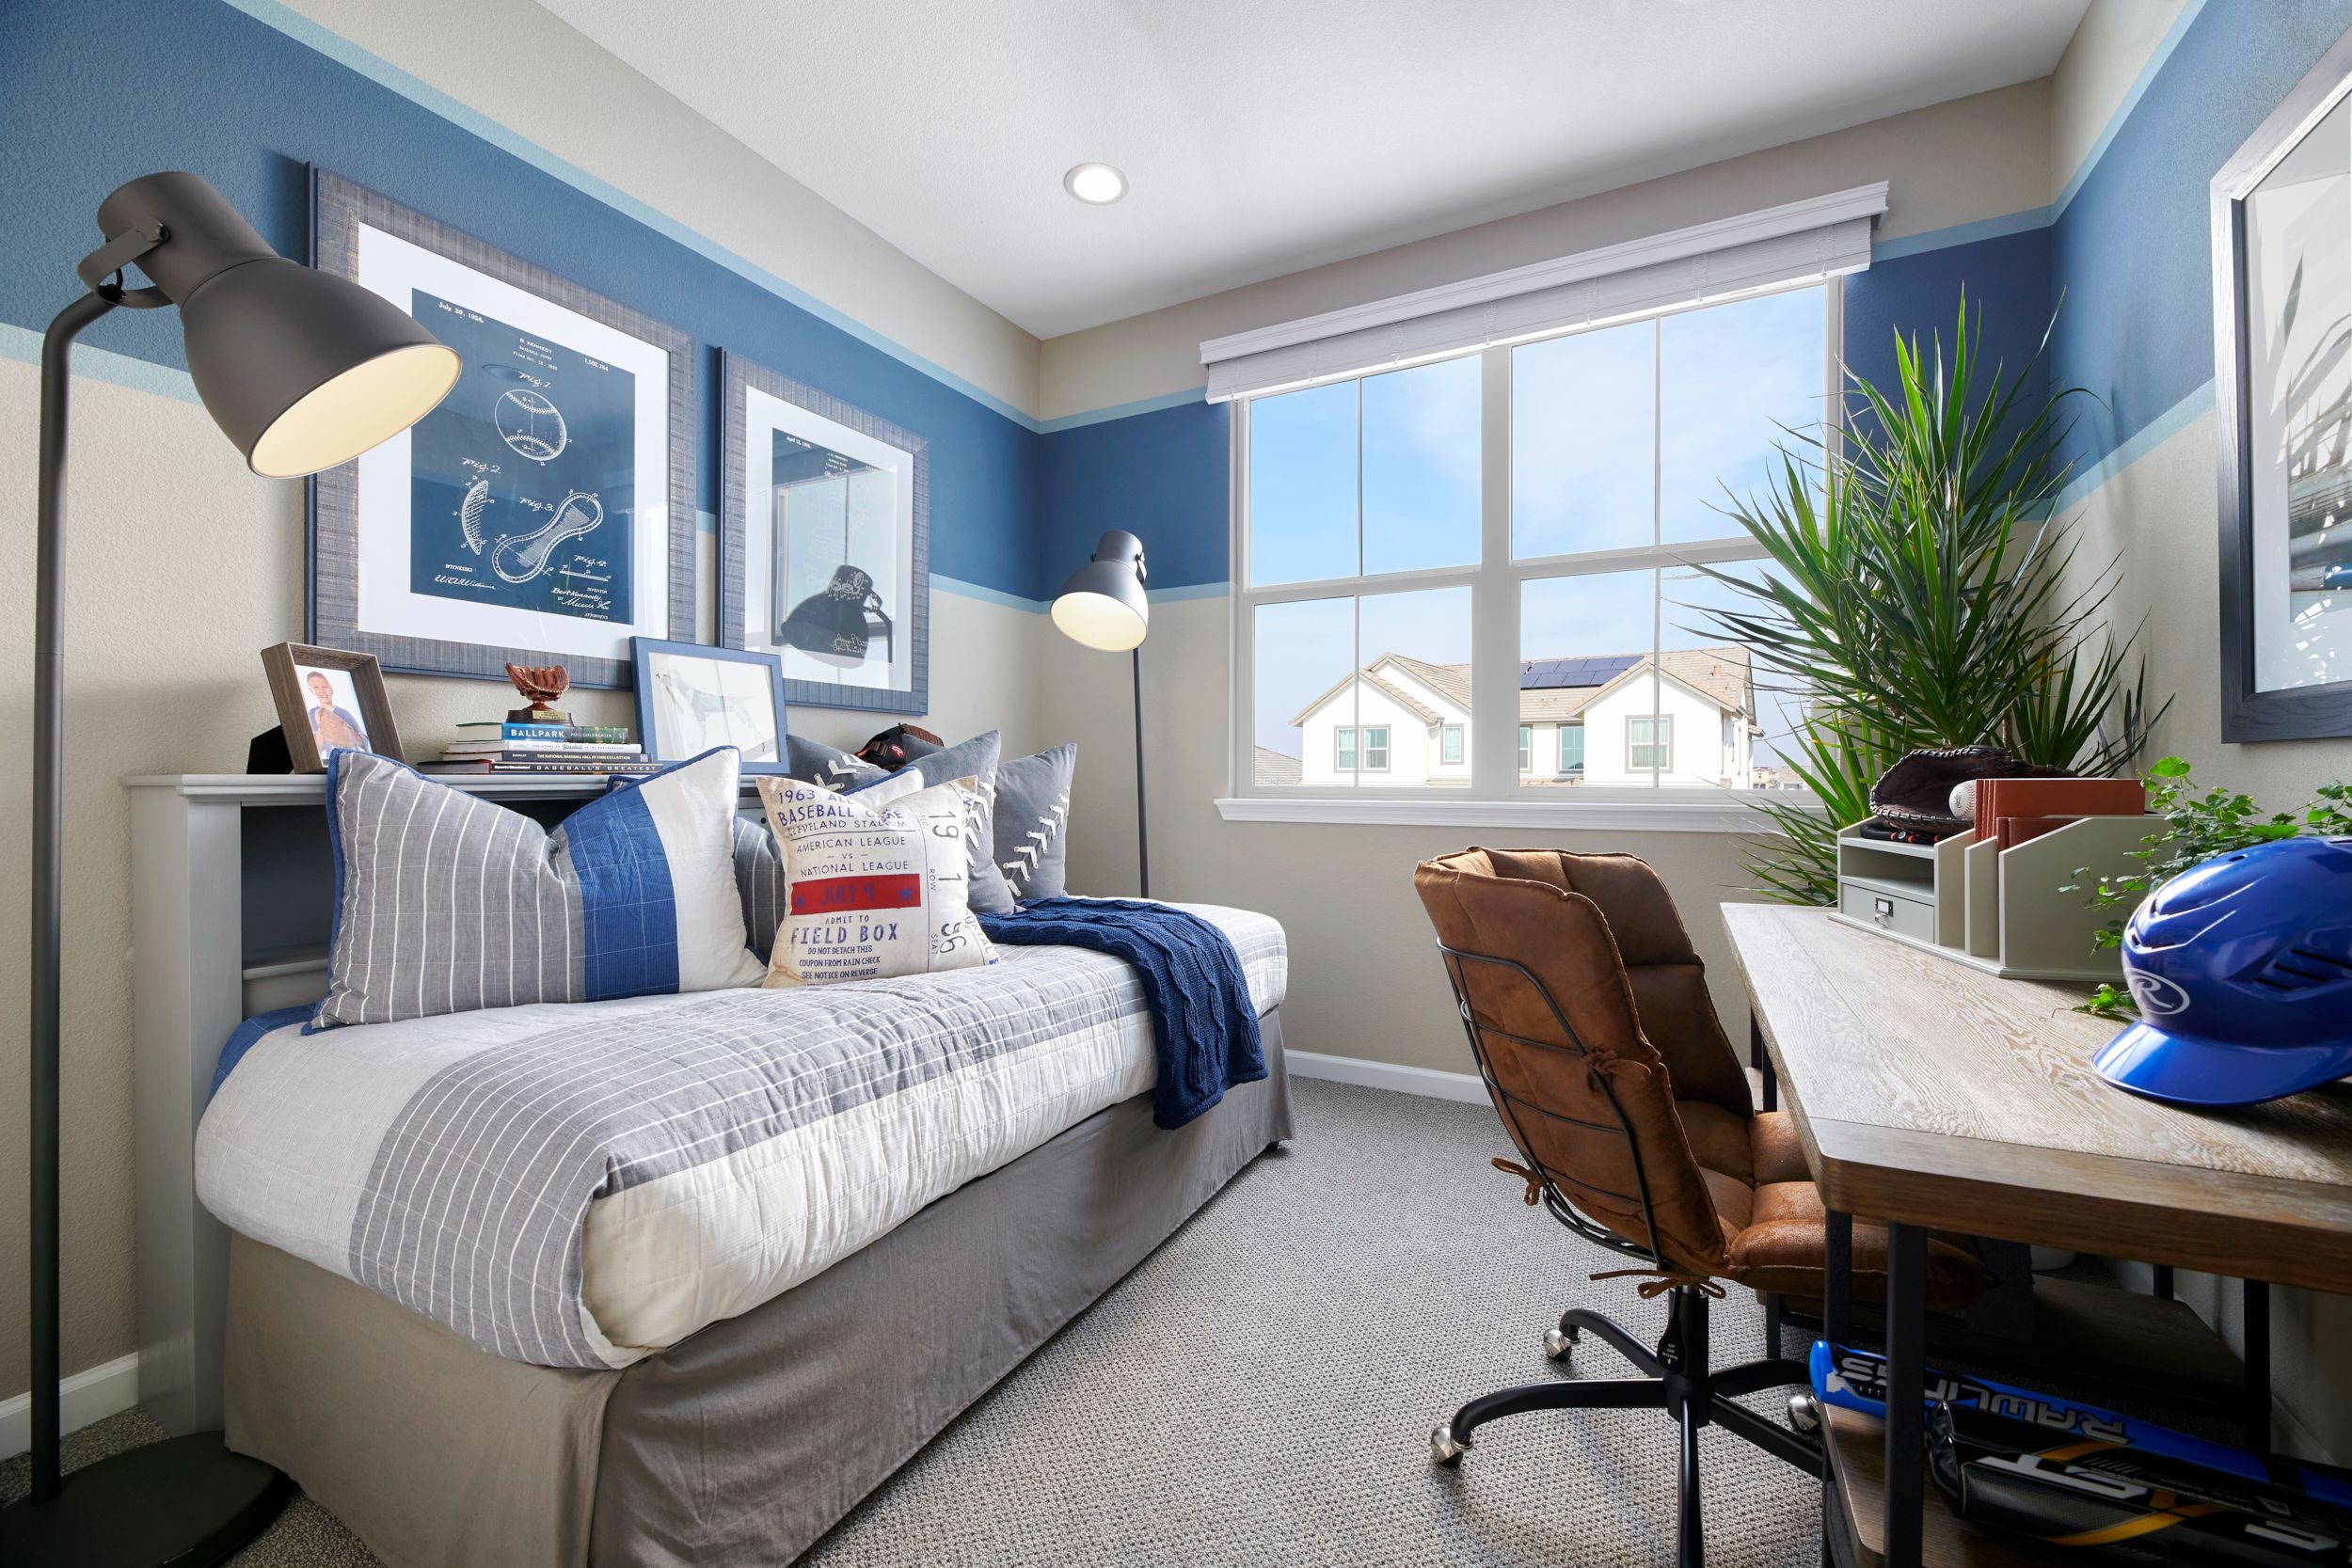 Bedroom featured in the Residence 3 By Van Daele Homes in Stockton-Lodi, CA